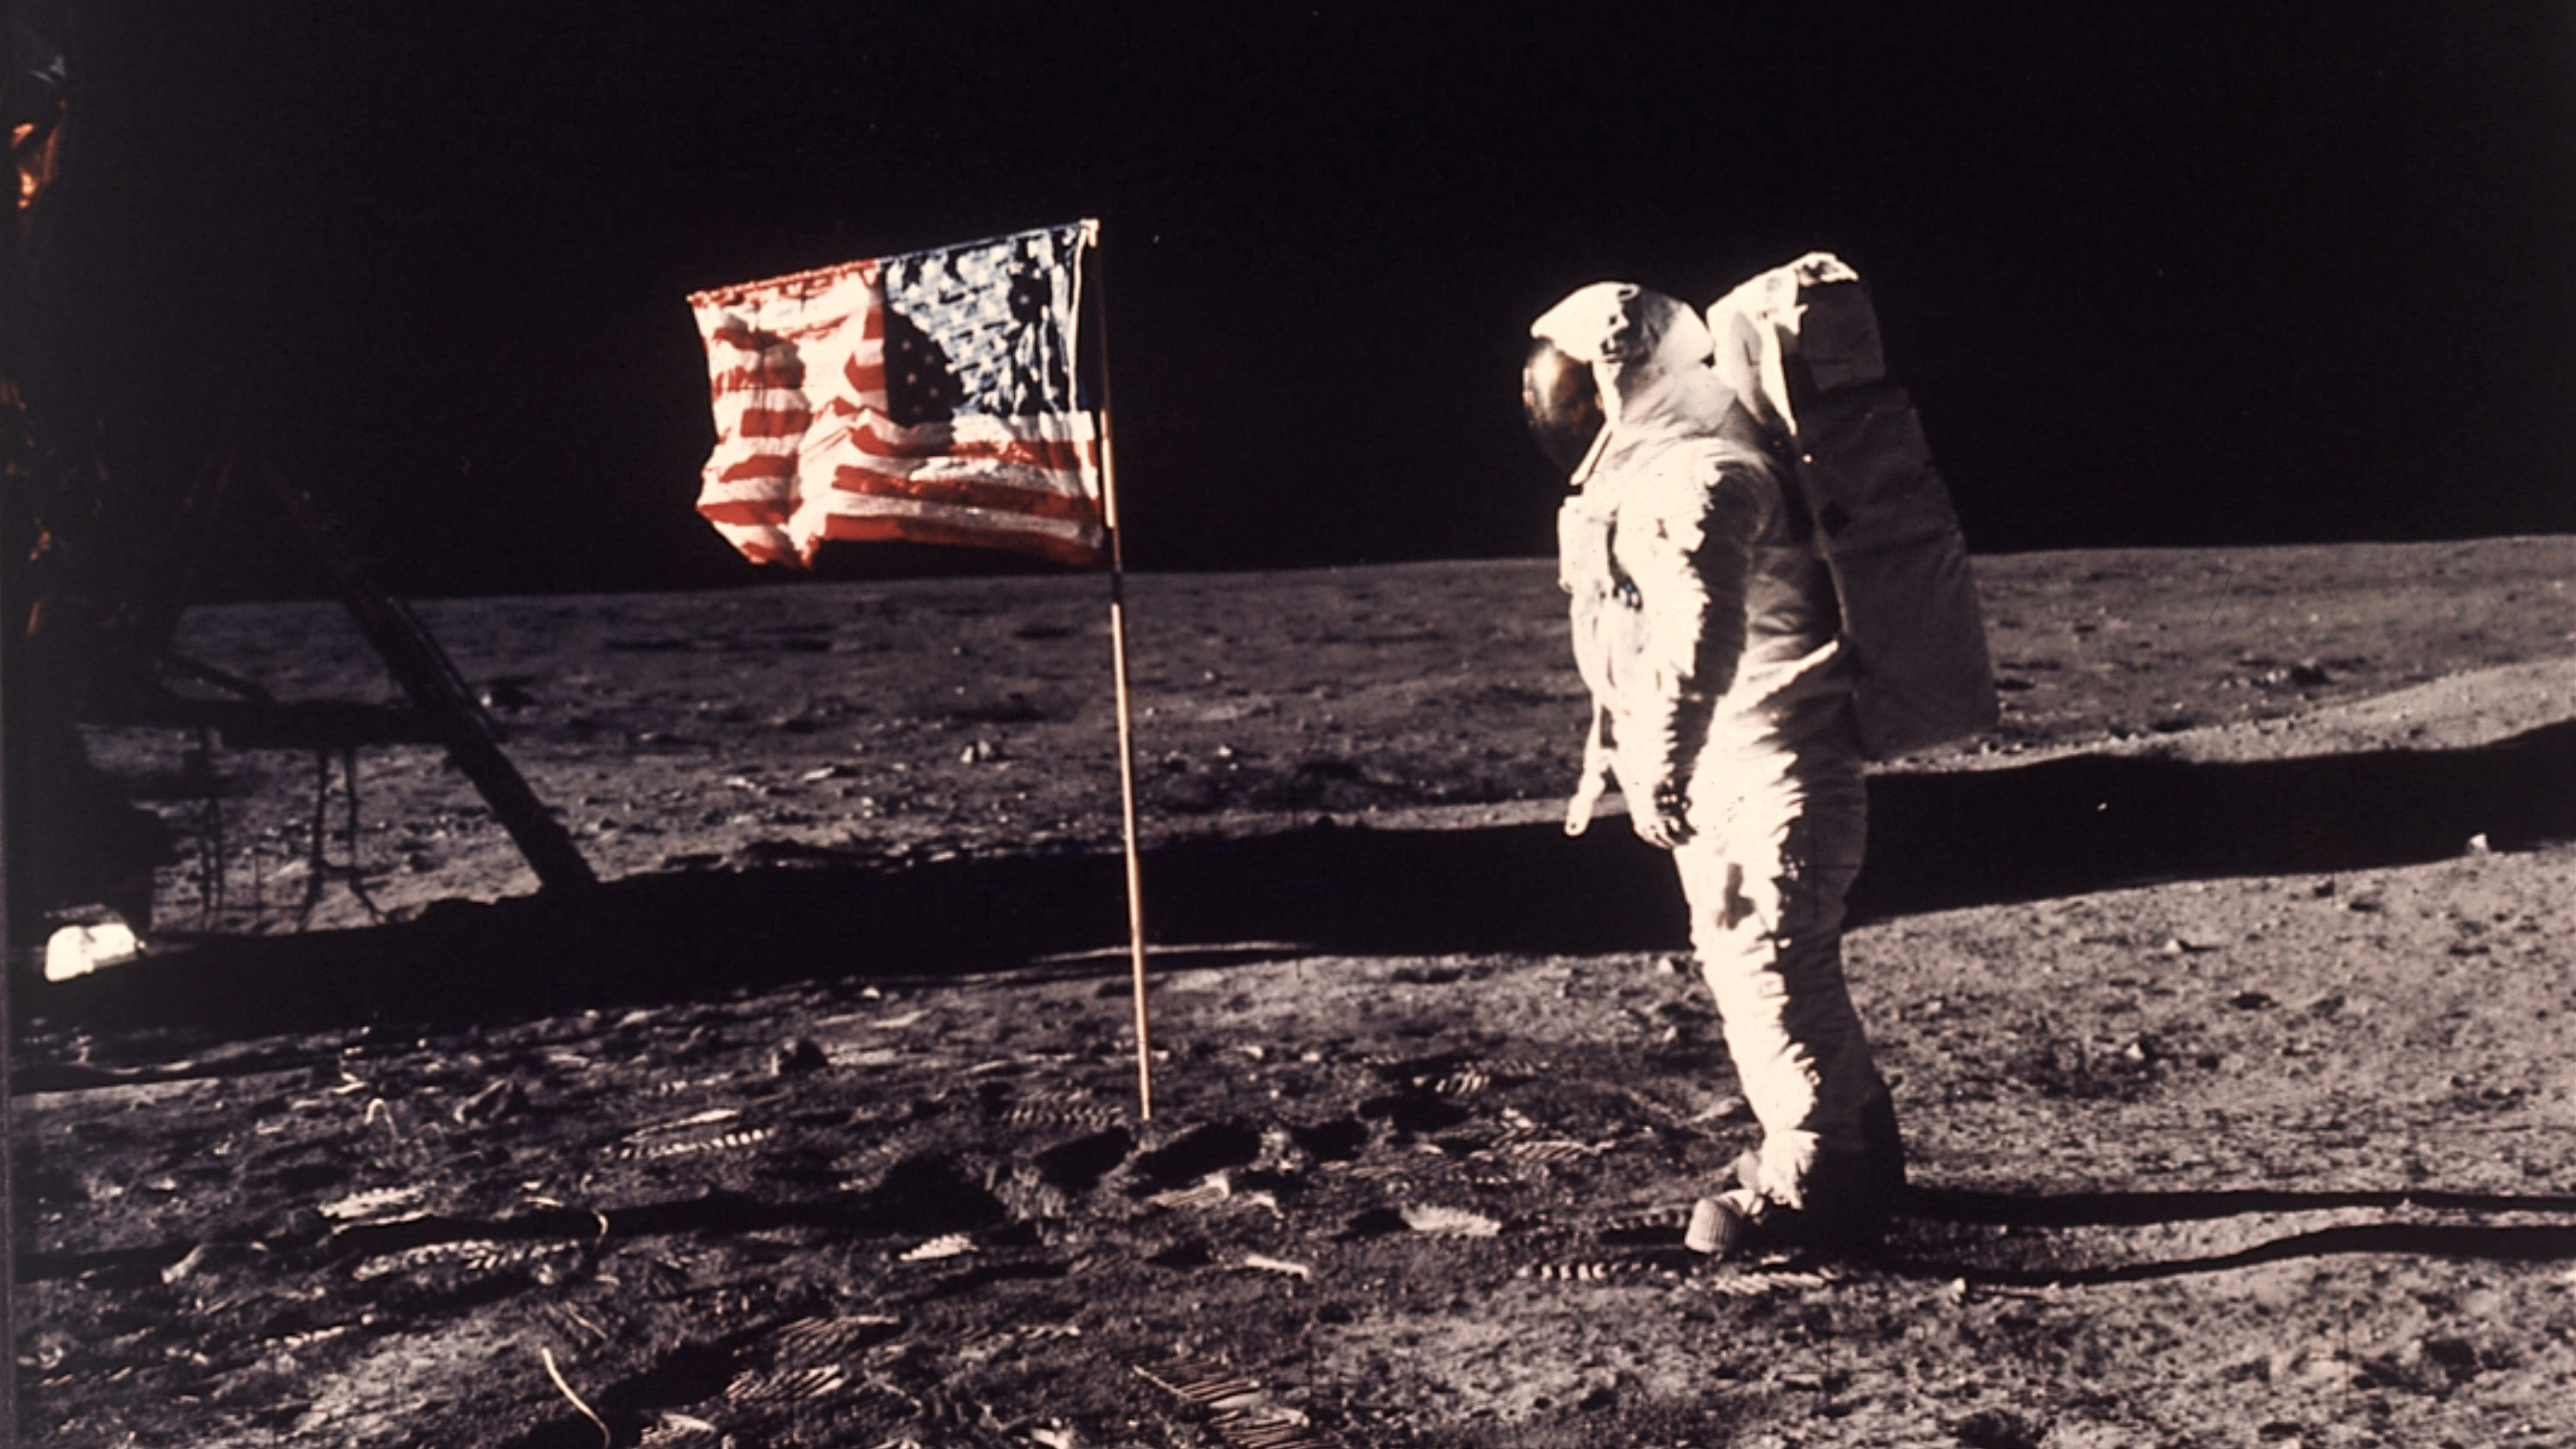 """Astronaut Edwin E. """"Buzz"""" Aldrin Jr. poses for a photograph beside the U.S. flag deployed on the moon during NASA's Apollo 11 mission on July 20, 1969."""